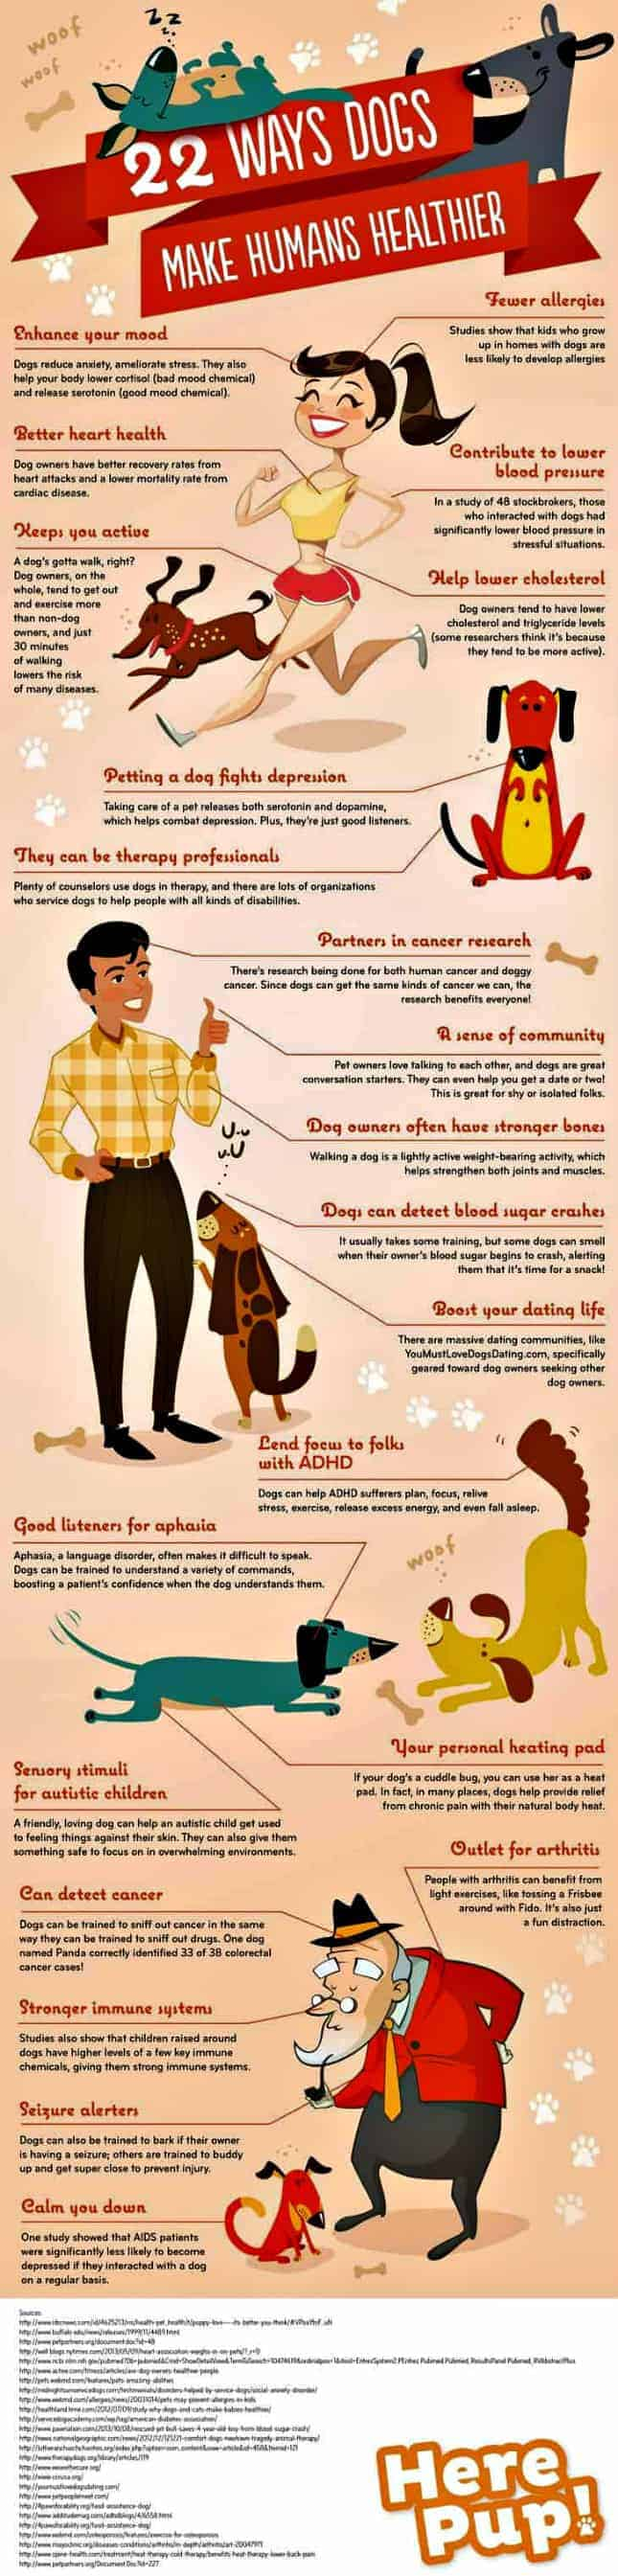 Dogs make owners healthy graphic